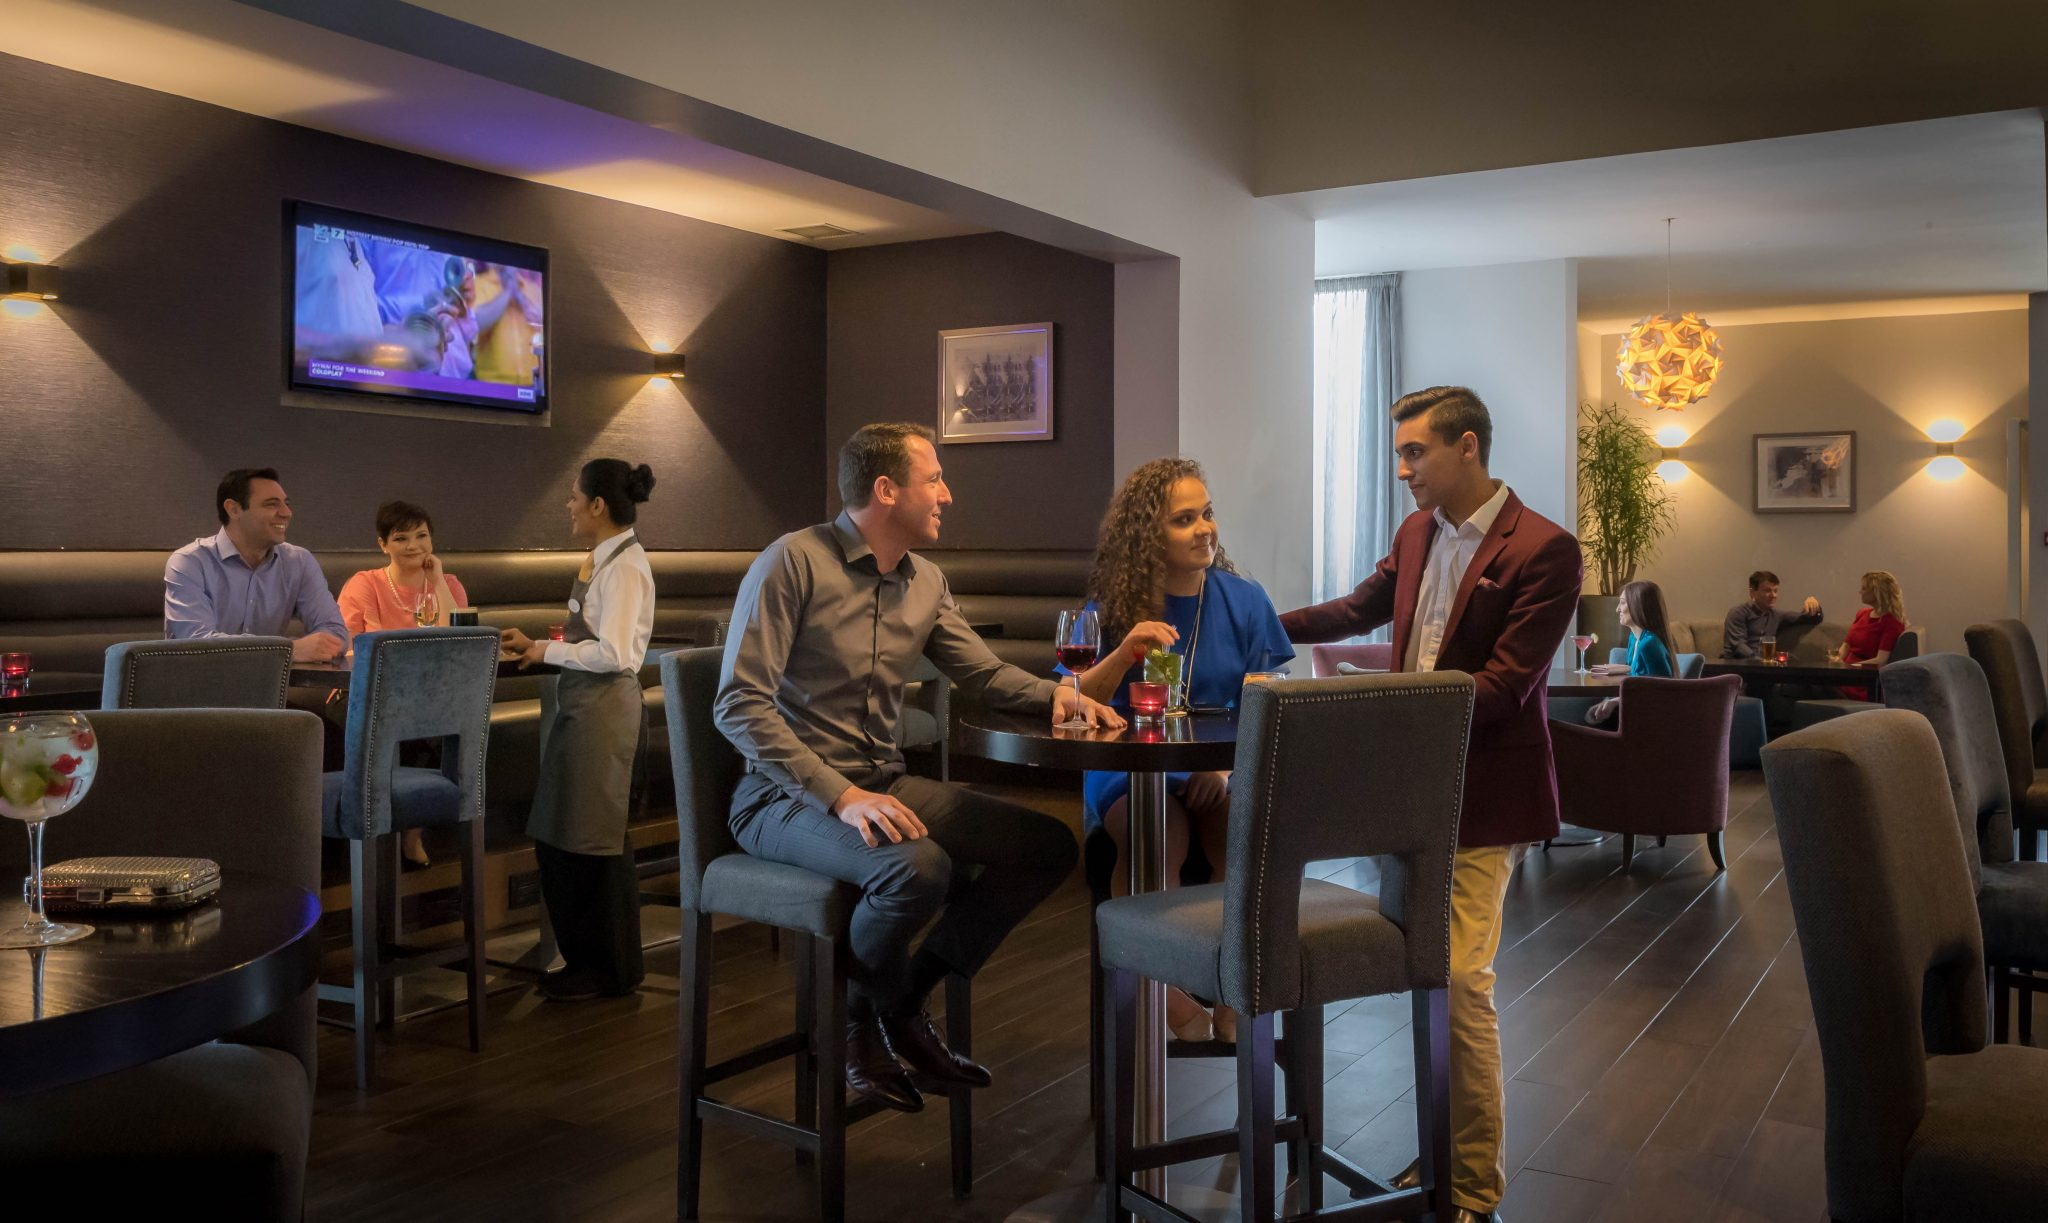 relax_and_unwind_in_The_Sky_Bar_at_Maldron_Hotel_Dublin_Airport